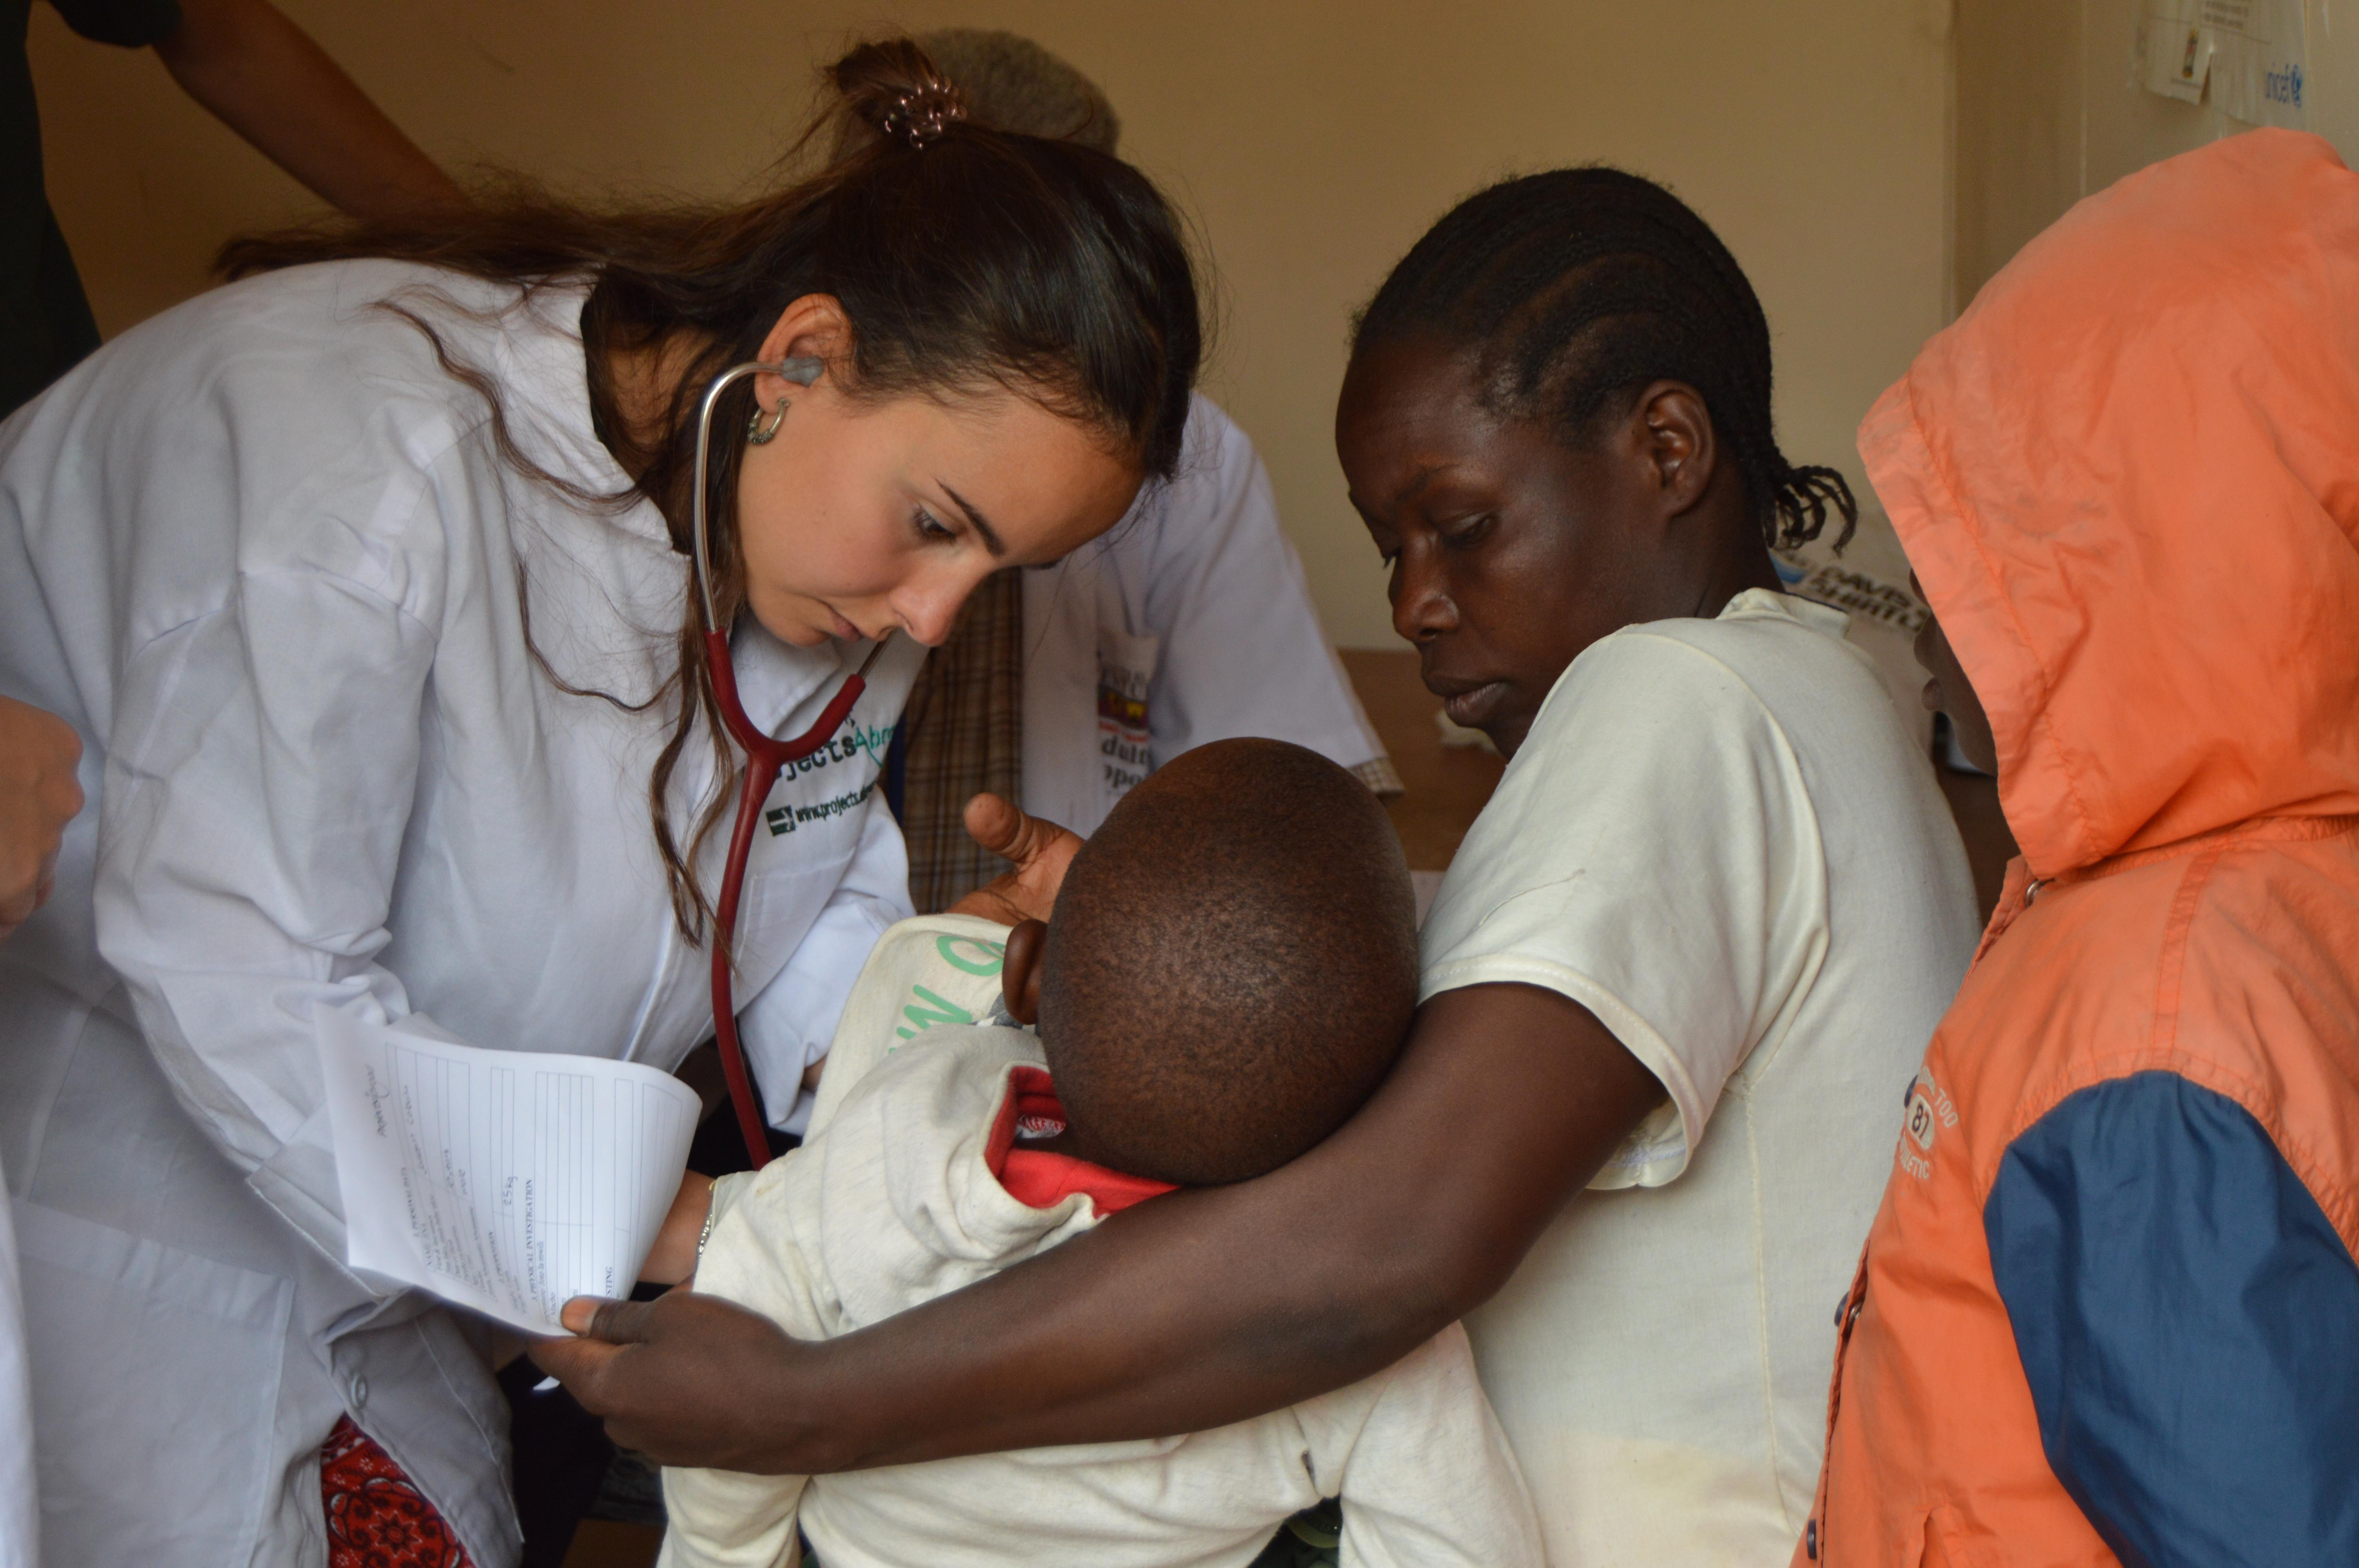 A French Projects Abroad intern is seen examining a child during a medical outreach whilst she completes her nursing internship in Tanzania.